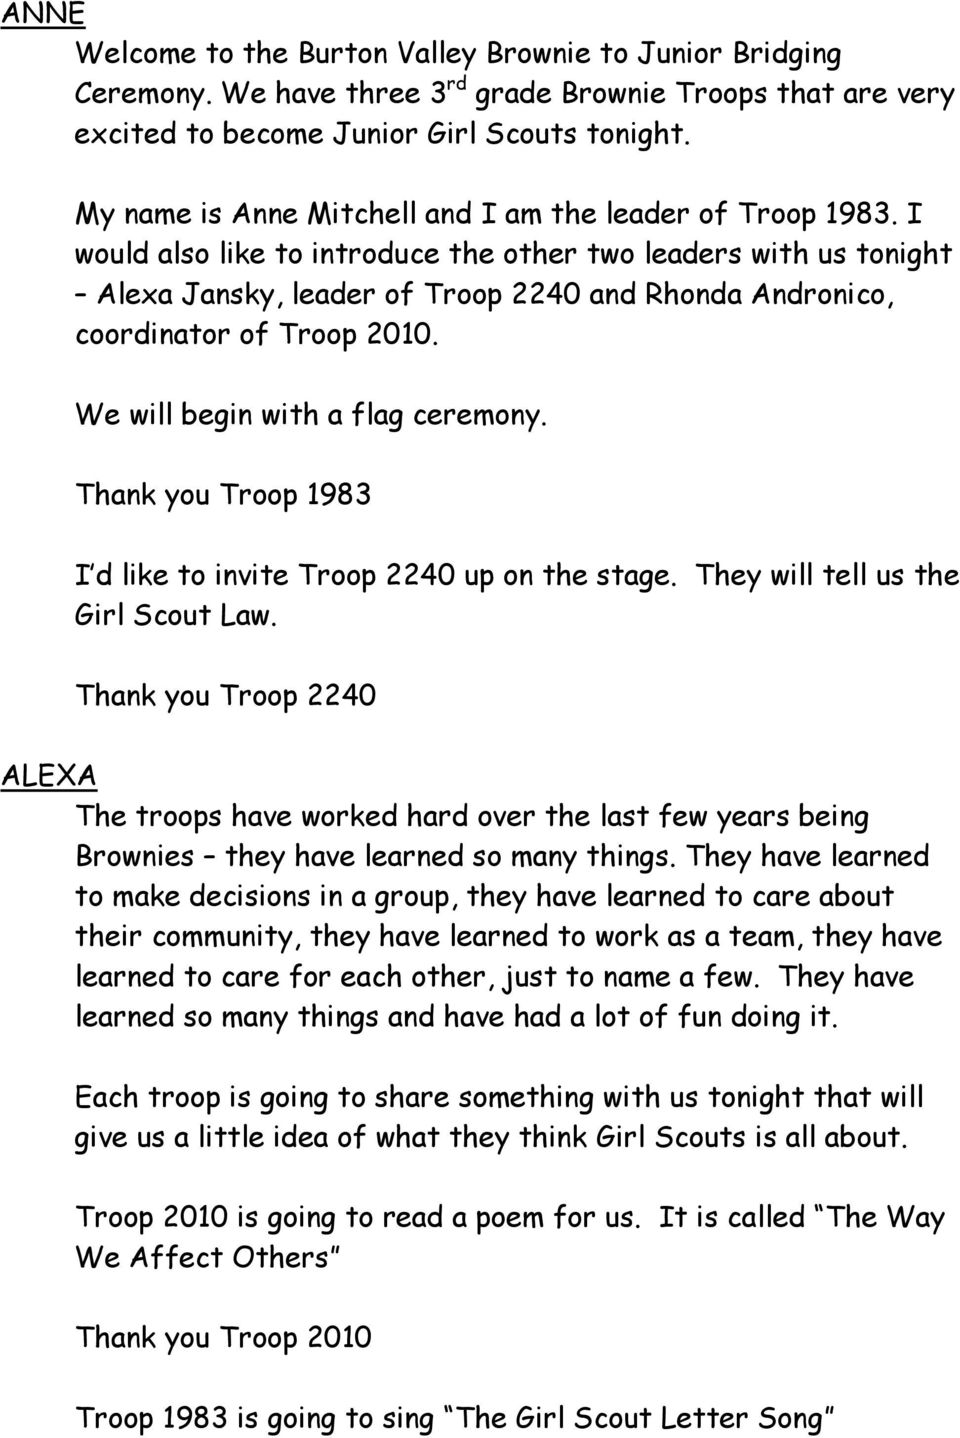 I would also like to introduce the other two leaders with us tonight Alexa Jansky, leader of Troop 2240 and Rhonda Andronico, coordinator of Troop 2010. We will begin with a flag ceremony.